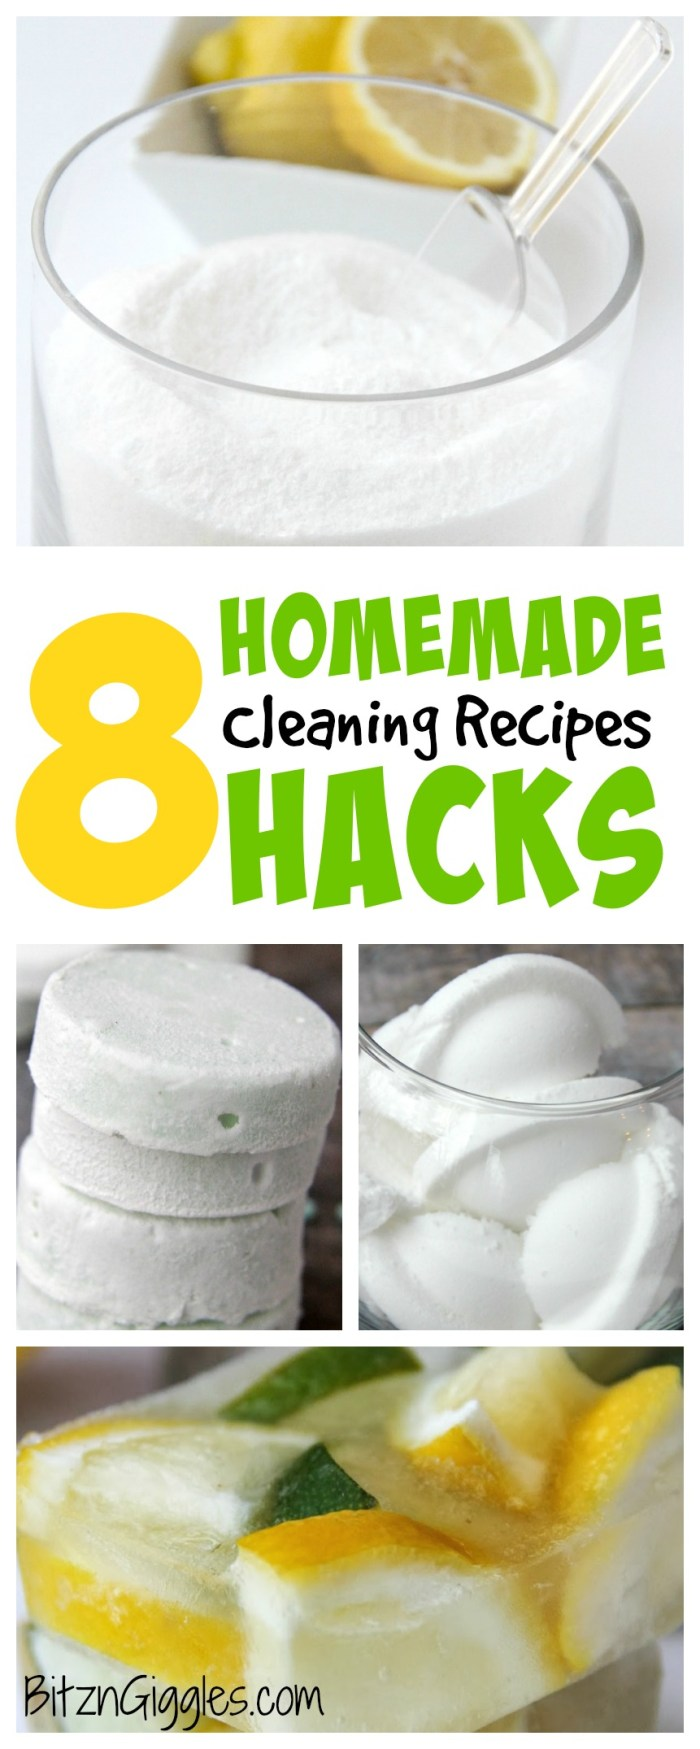 8 Homemade Hacks: Cleaning Recipes